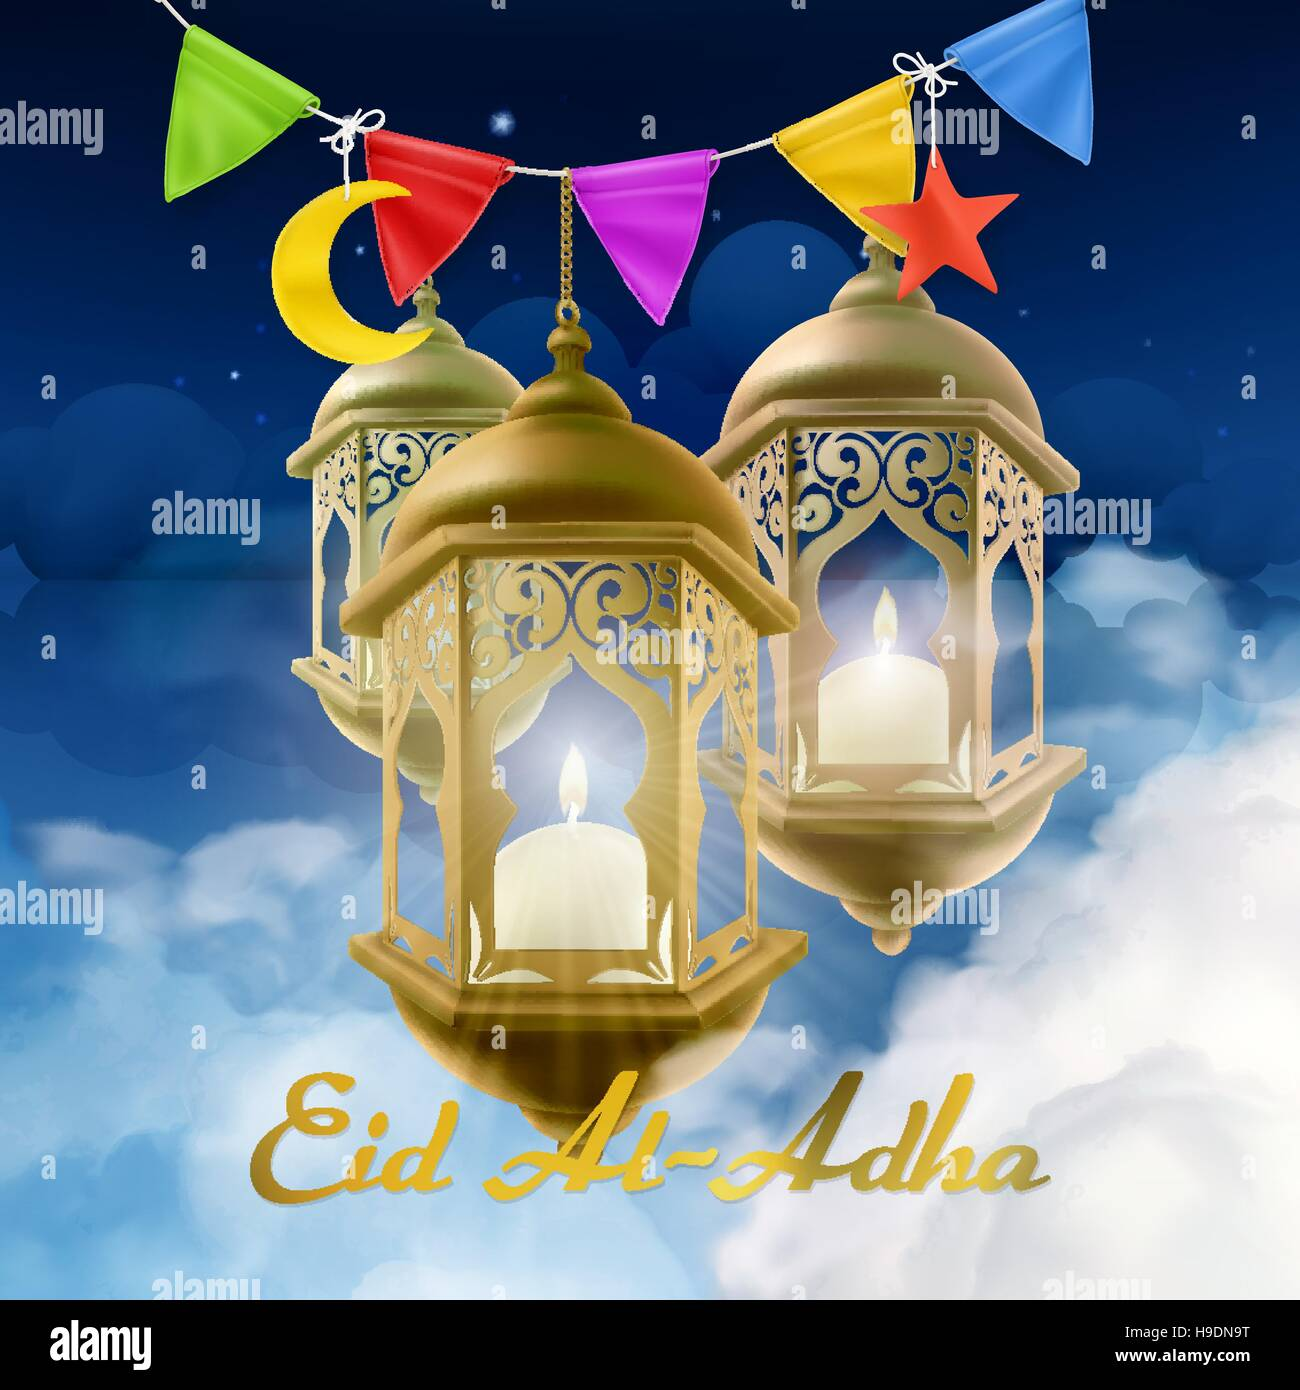 Muslim holiday eid al adha islamic culture greeting card with lamp muslim holiday eid al adha islamic culture greeting card with lamp vector background m4hsunfo